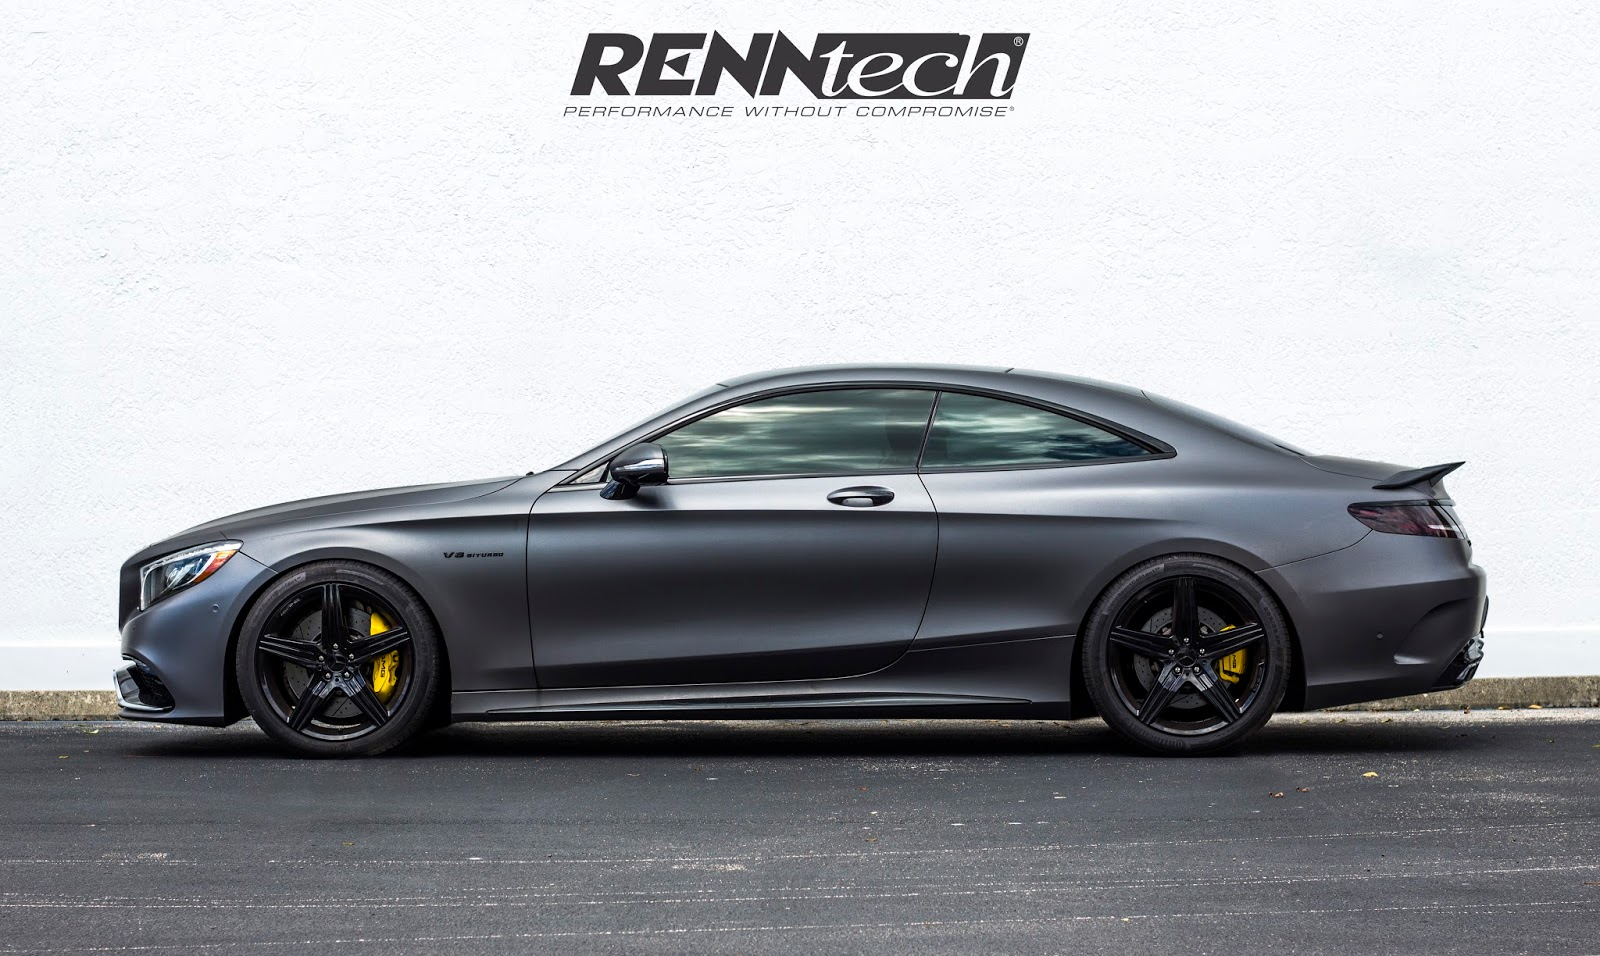 mercedes amg s 63 coupe gets tuning package from renntech reaches 708 hp autoevolution. Black Bedroom Furniture Sets. Home Design Ideas